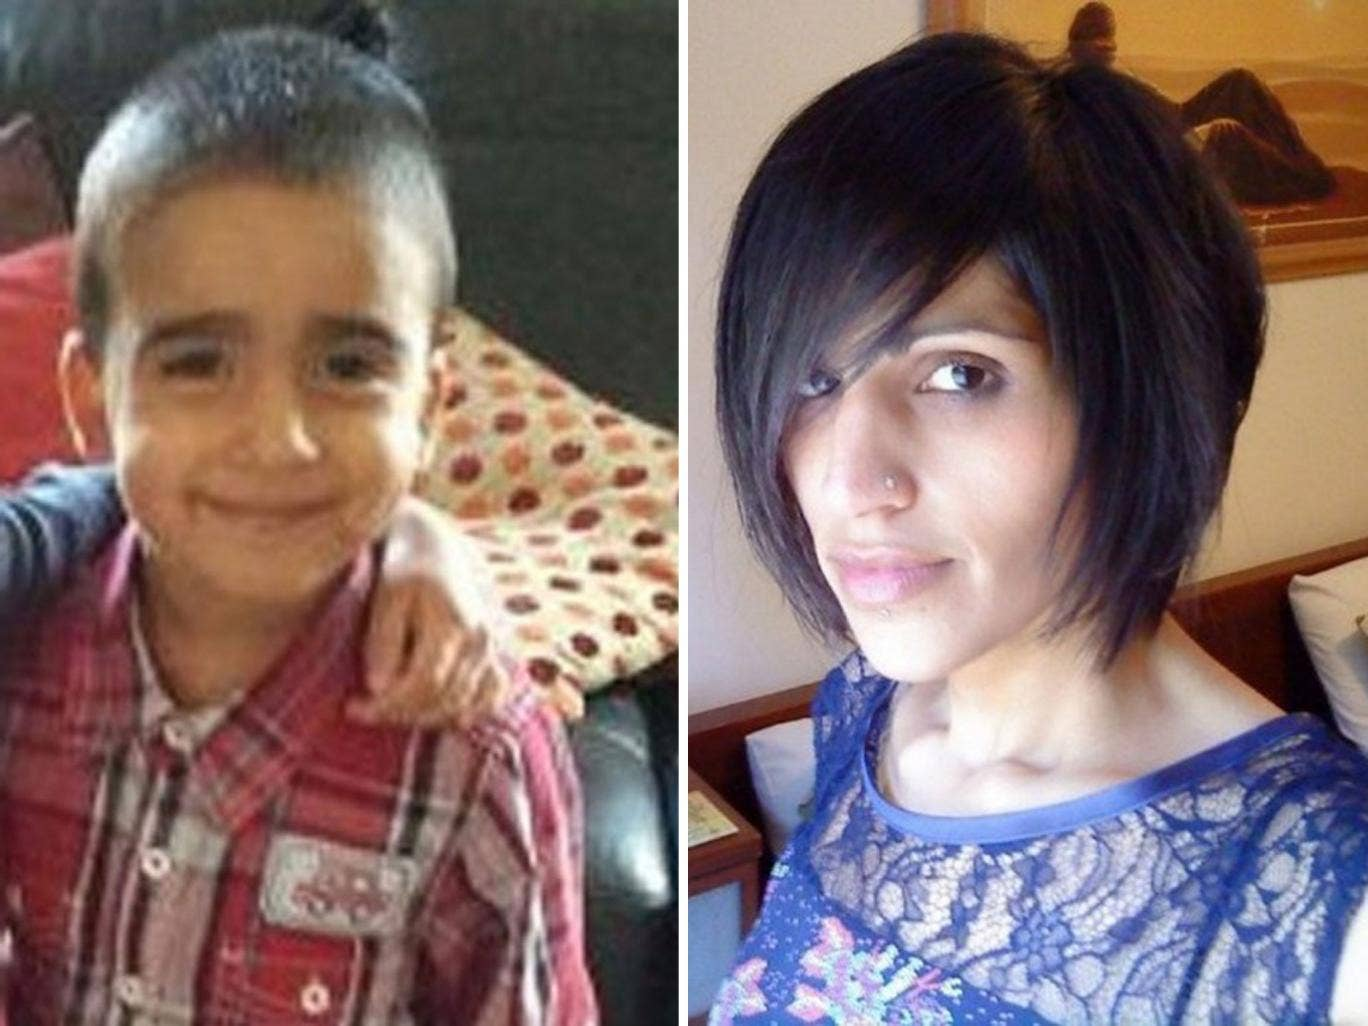 Three-year-old Mikaeel Kular and his mother Rosdeep, 33, who has been arrested and charged 'in connection to his death'